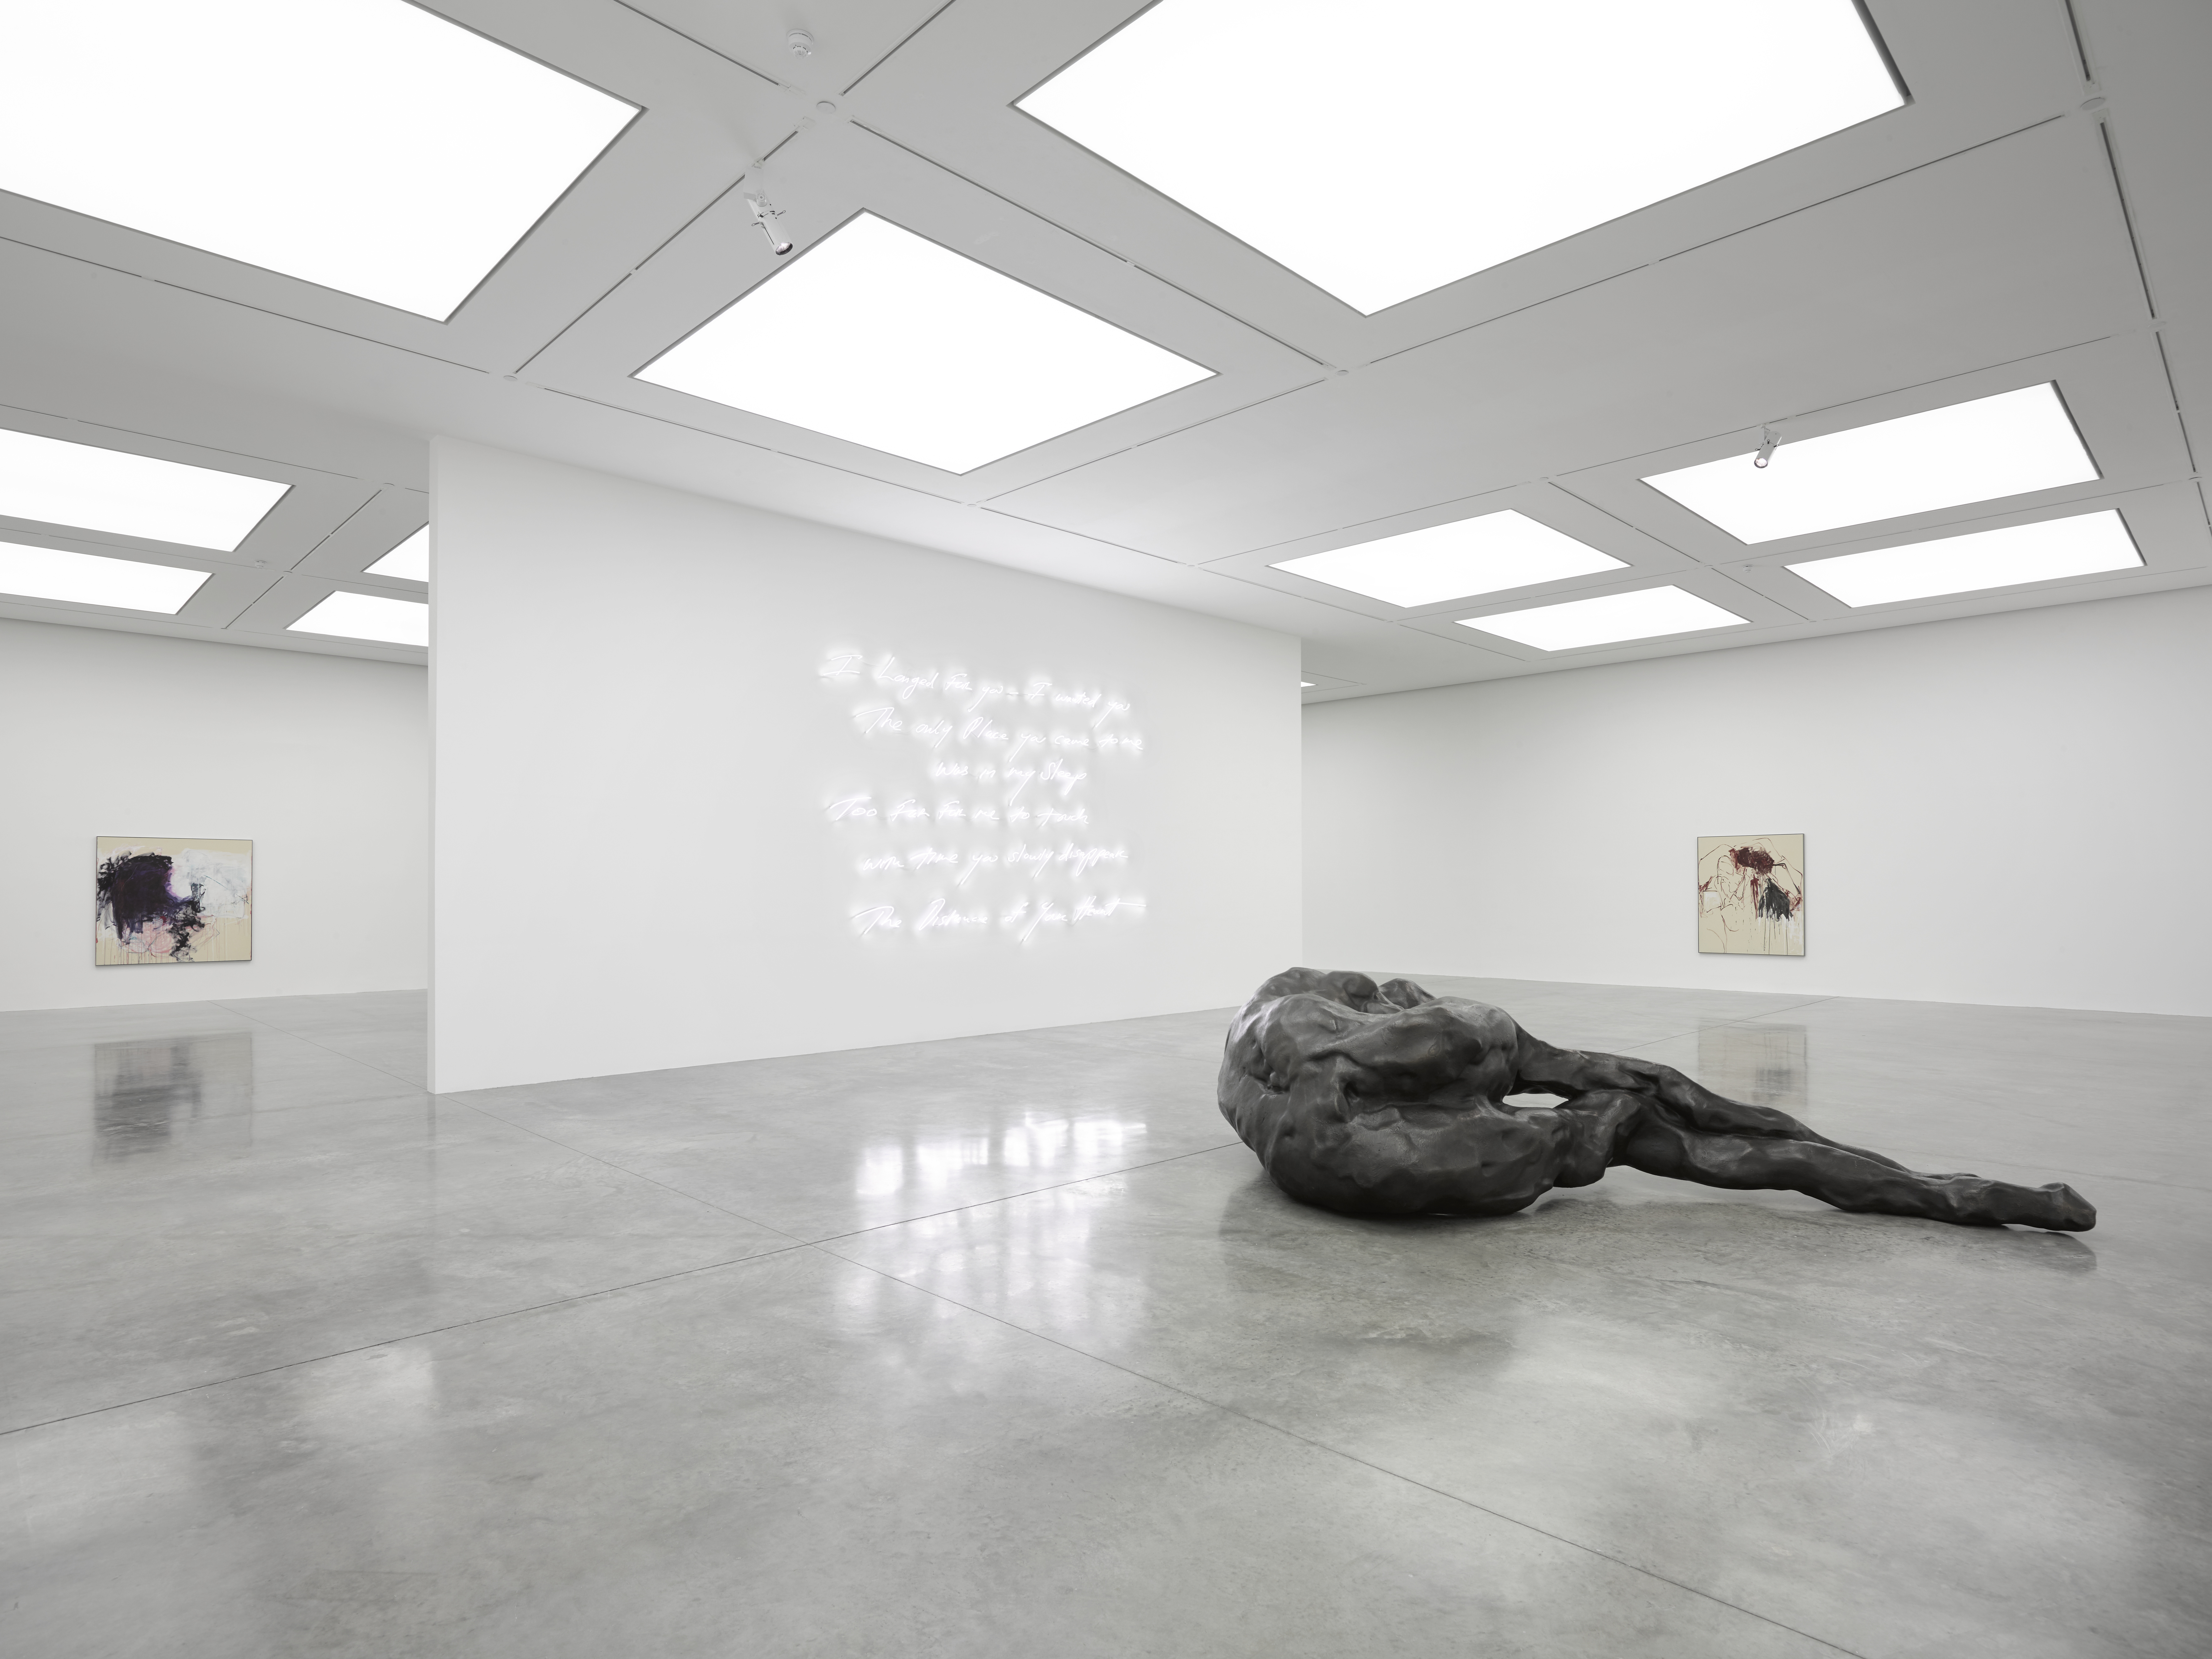 Tracey Emin, A Fortnight of Tears, White Cube Bermondsey